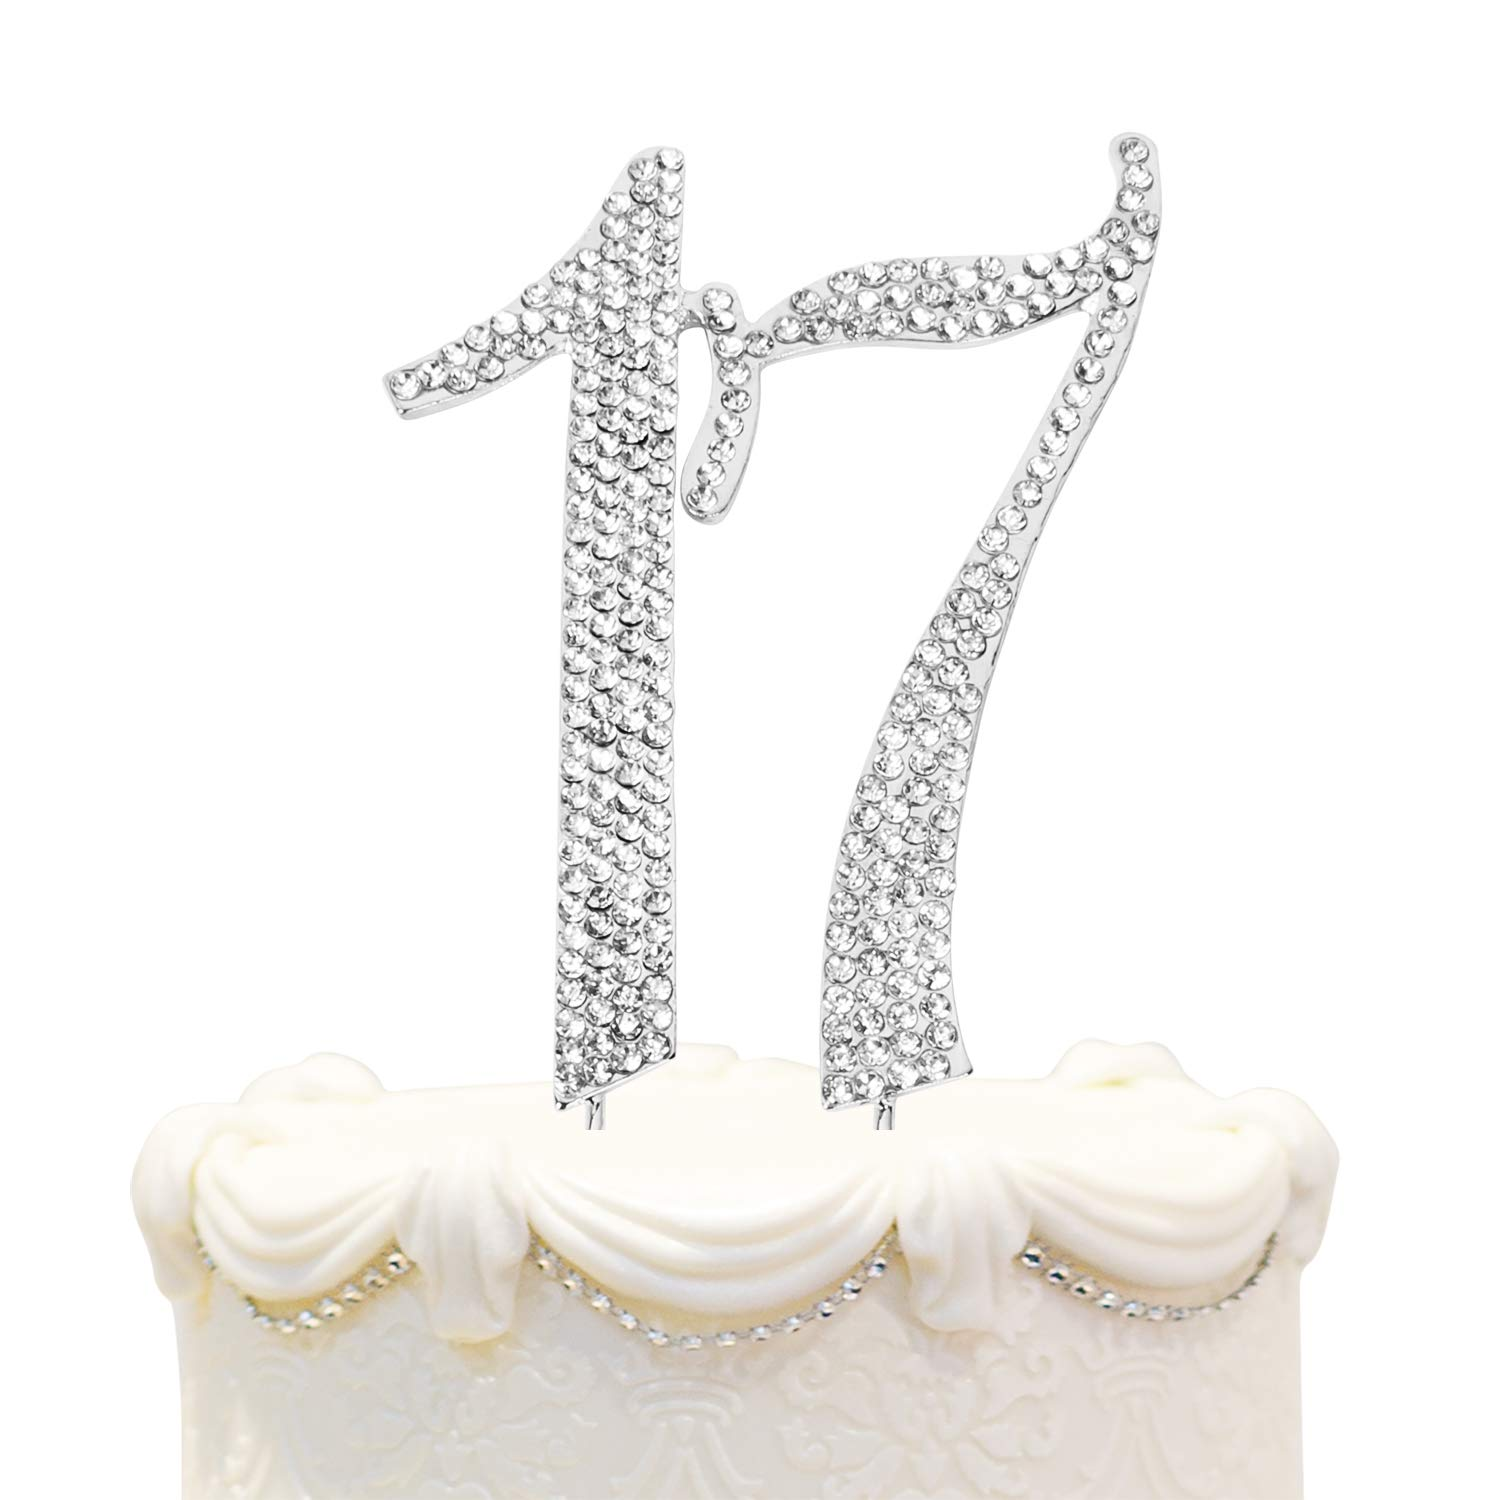 Hatcher Lee Bling Crystal Rhinestone 17 Birthday Cake Topper